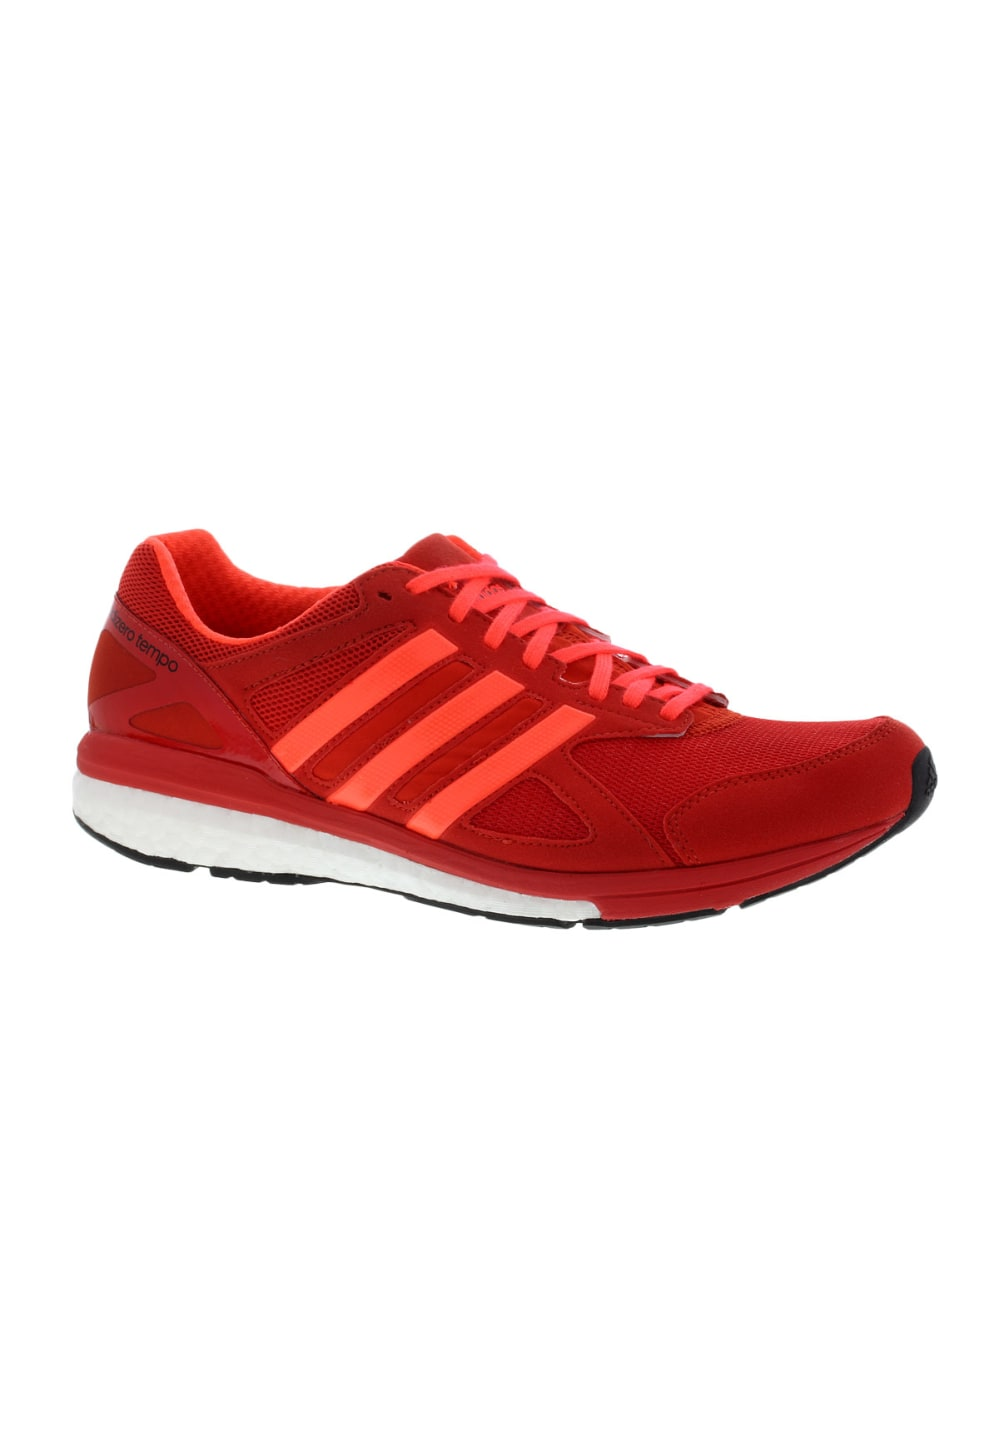 Homme Adidas Running Adidas Chaussure Chaussure Pronateur Ybgy76fv